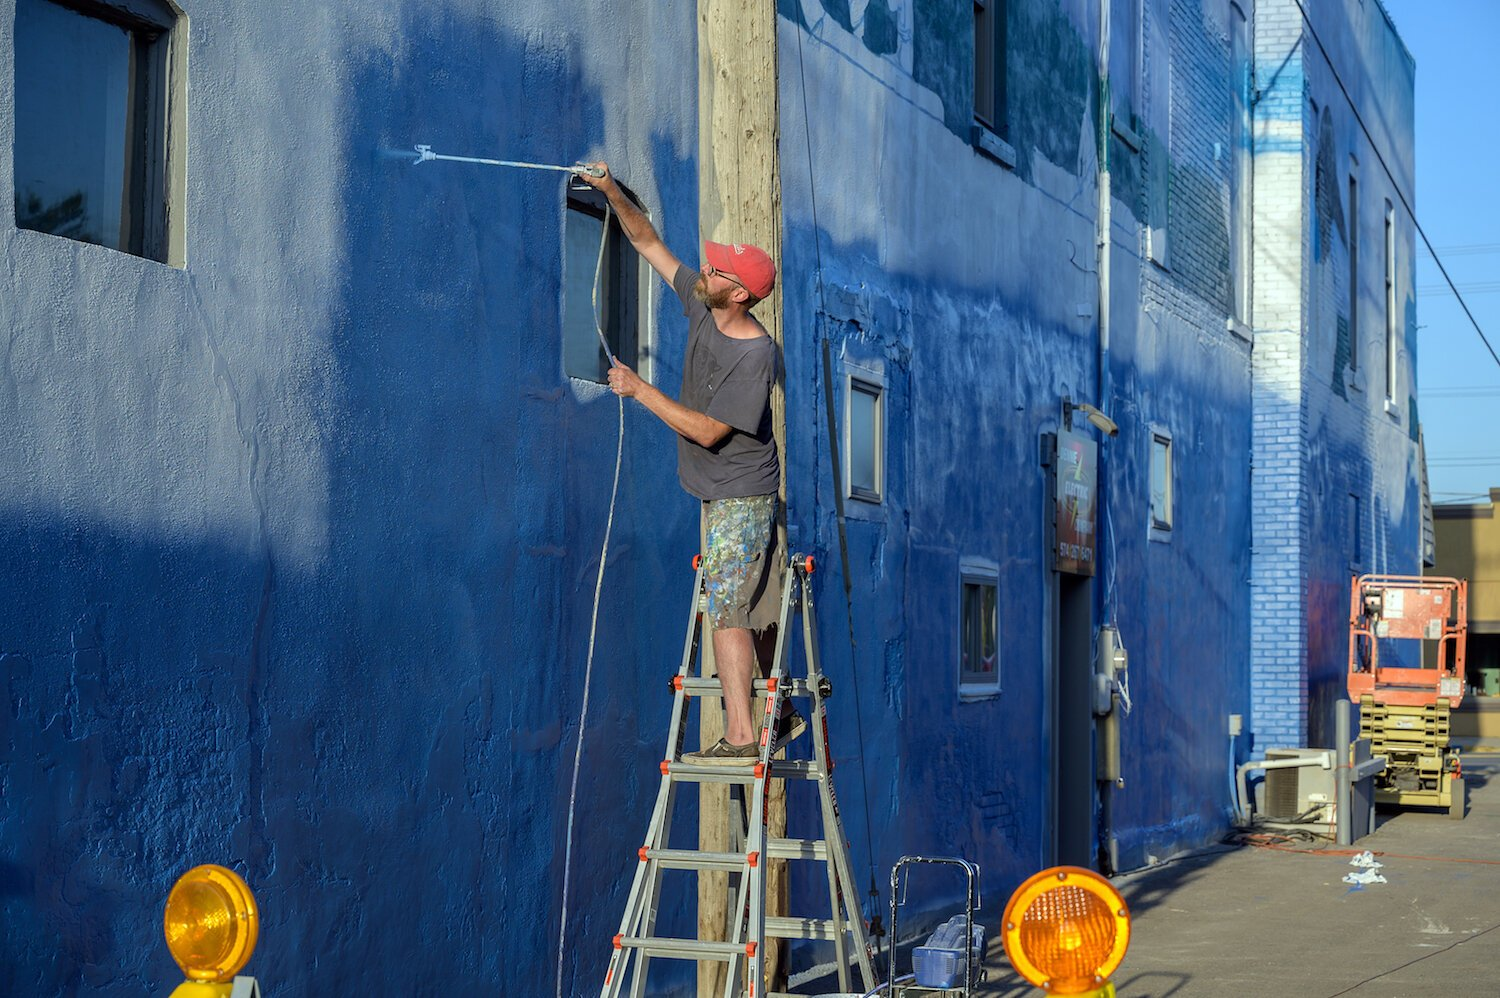 Tim Parsley works on a mural in downtown Warsaw.